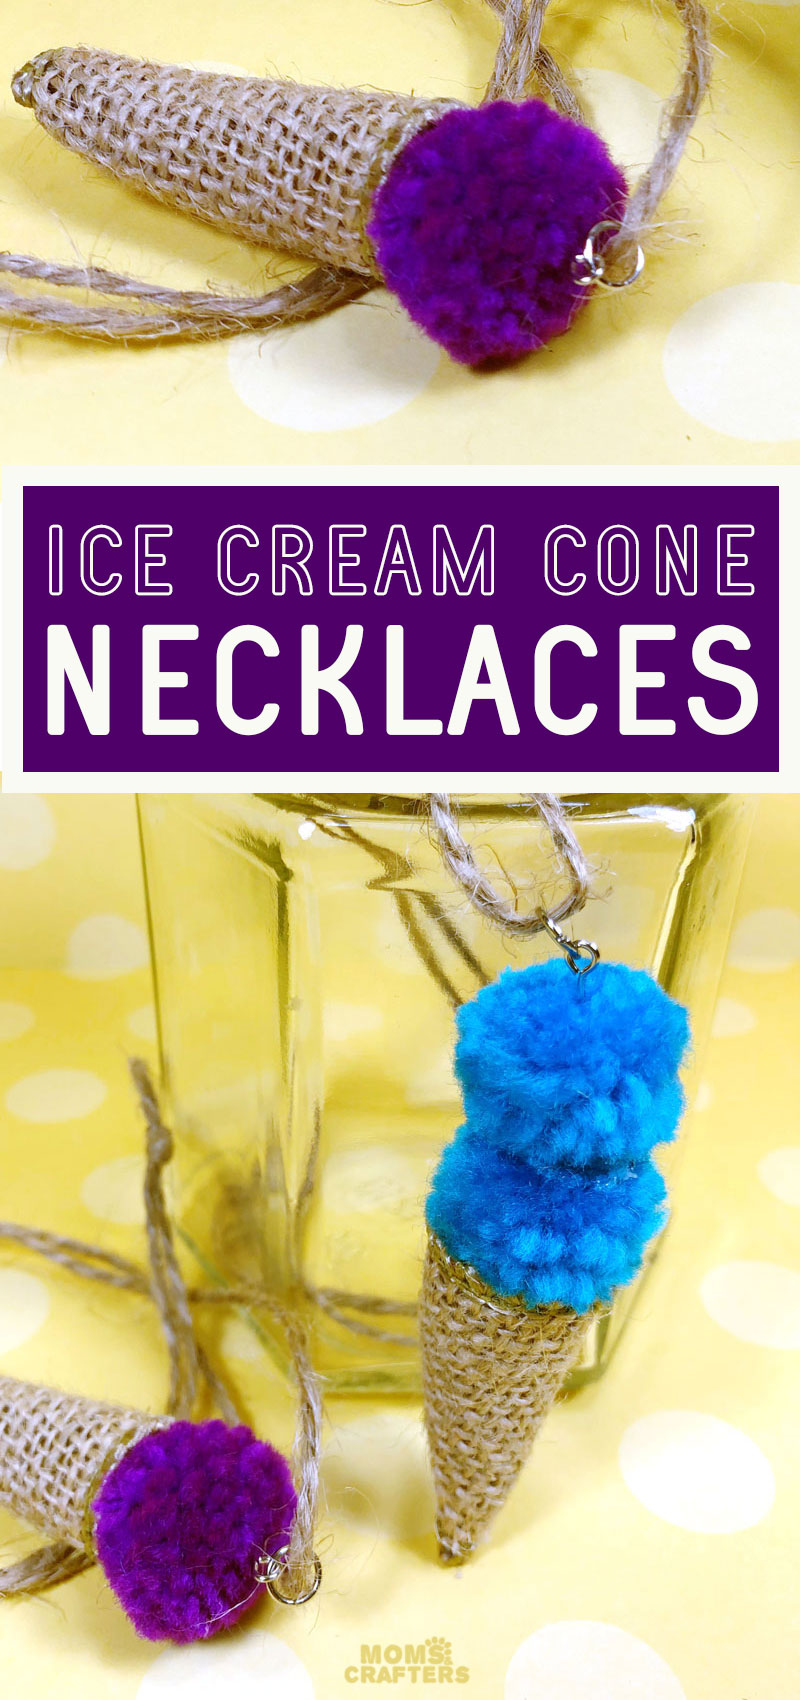 Craft an ice cream necklace using some burlap and a pom pom! This fun summer craft for kids and tweens is adorable and an easy jewelry making idea for kids.